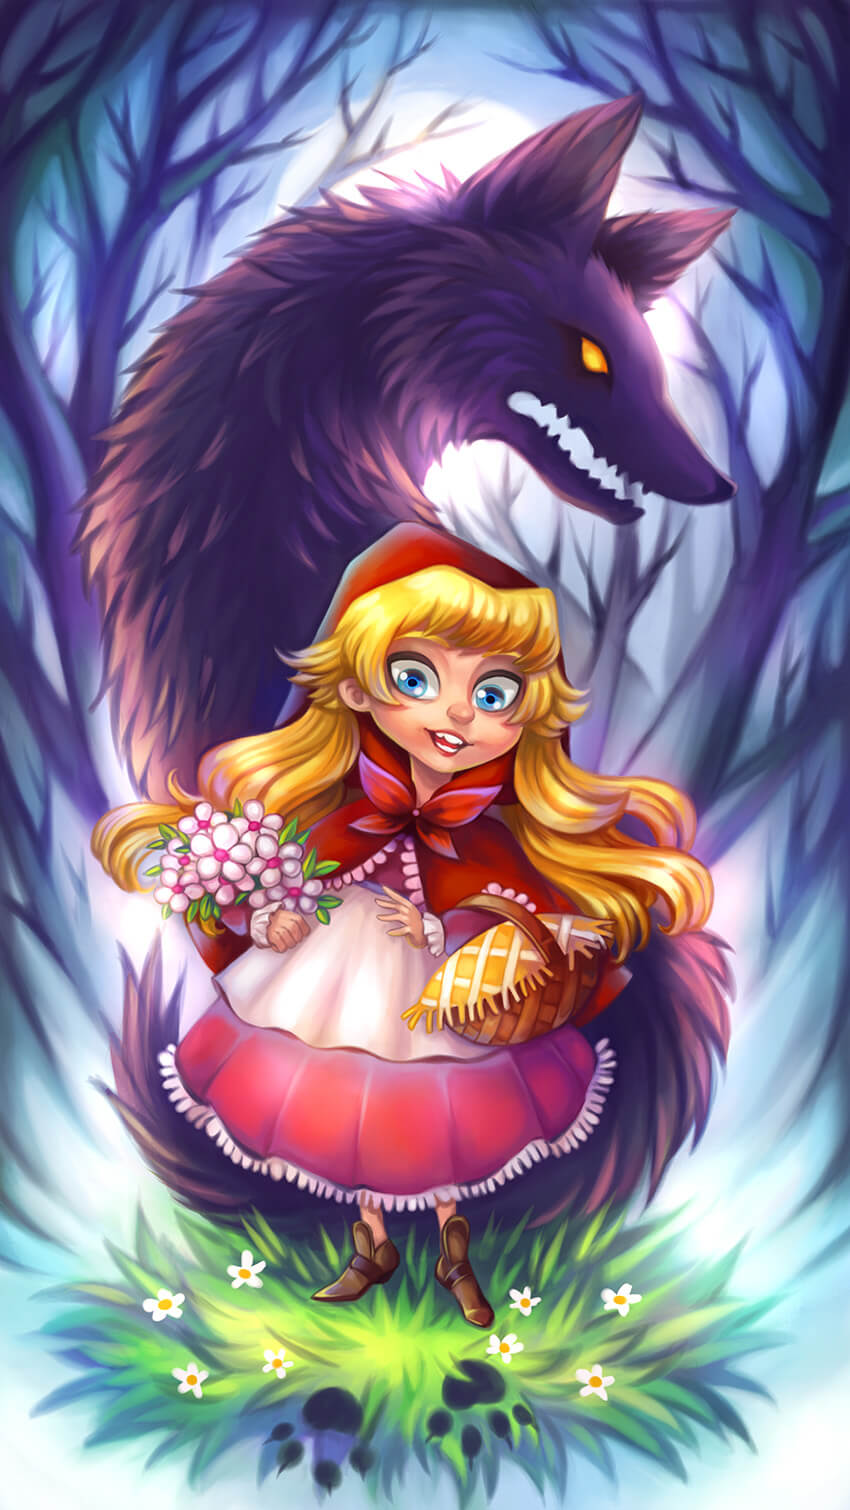 how-to-create-little-red-riding-hood-inspired-fairytale-illustration